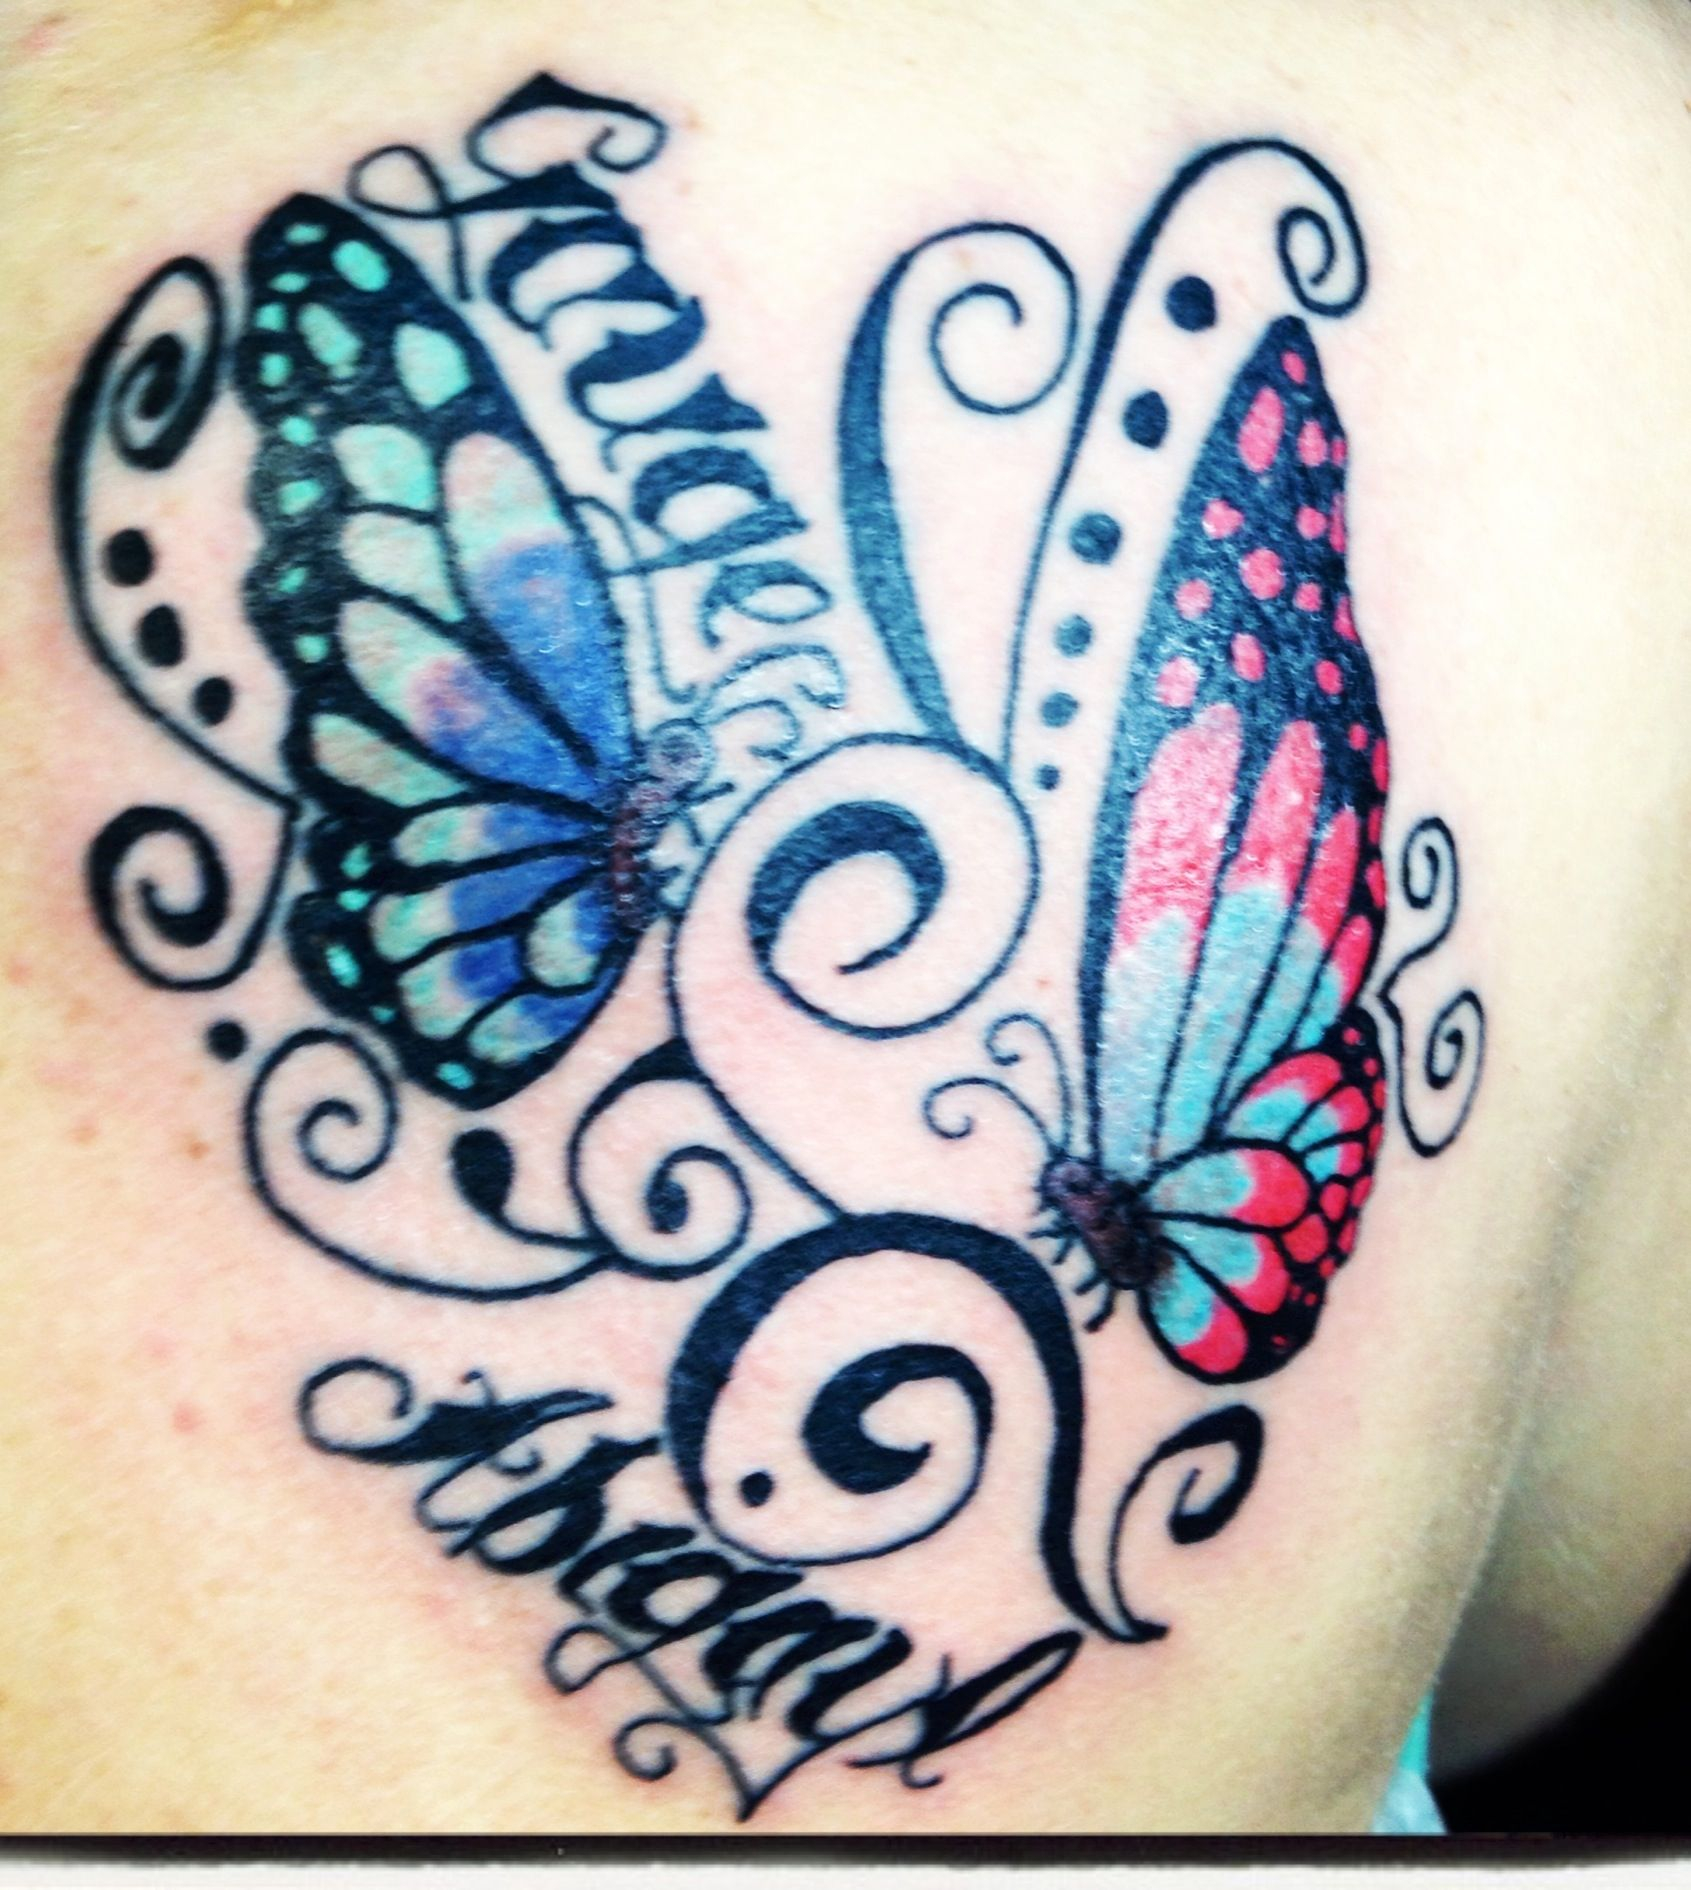 Butterfly Tattoo With Childrens Names Tattoo Tattoos With Kids within dimensions 1691 X 1890